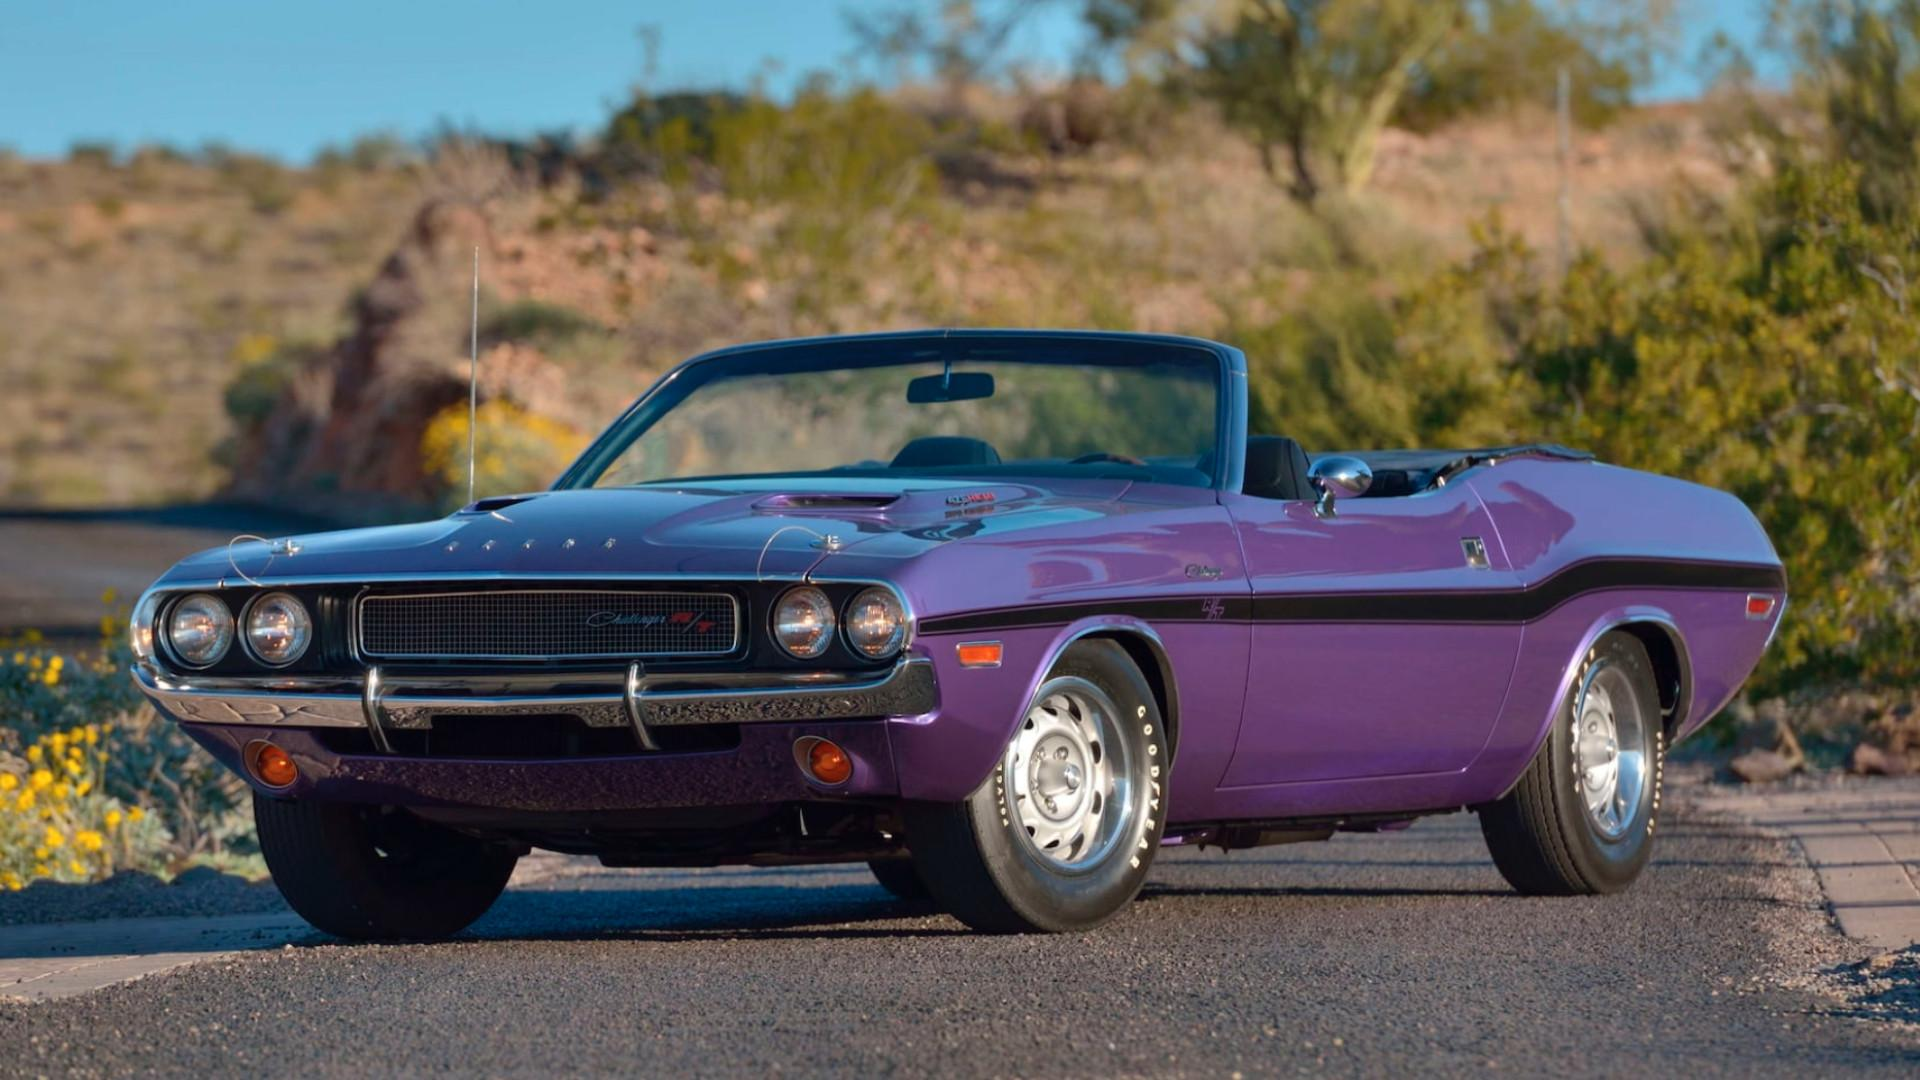 Rare 1970 Plum Crazy Purple Dodge Challenger R/T needs new owner